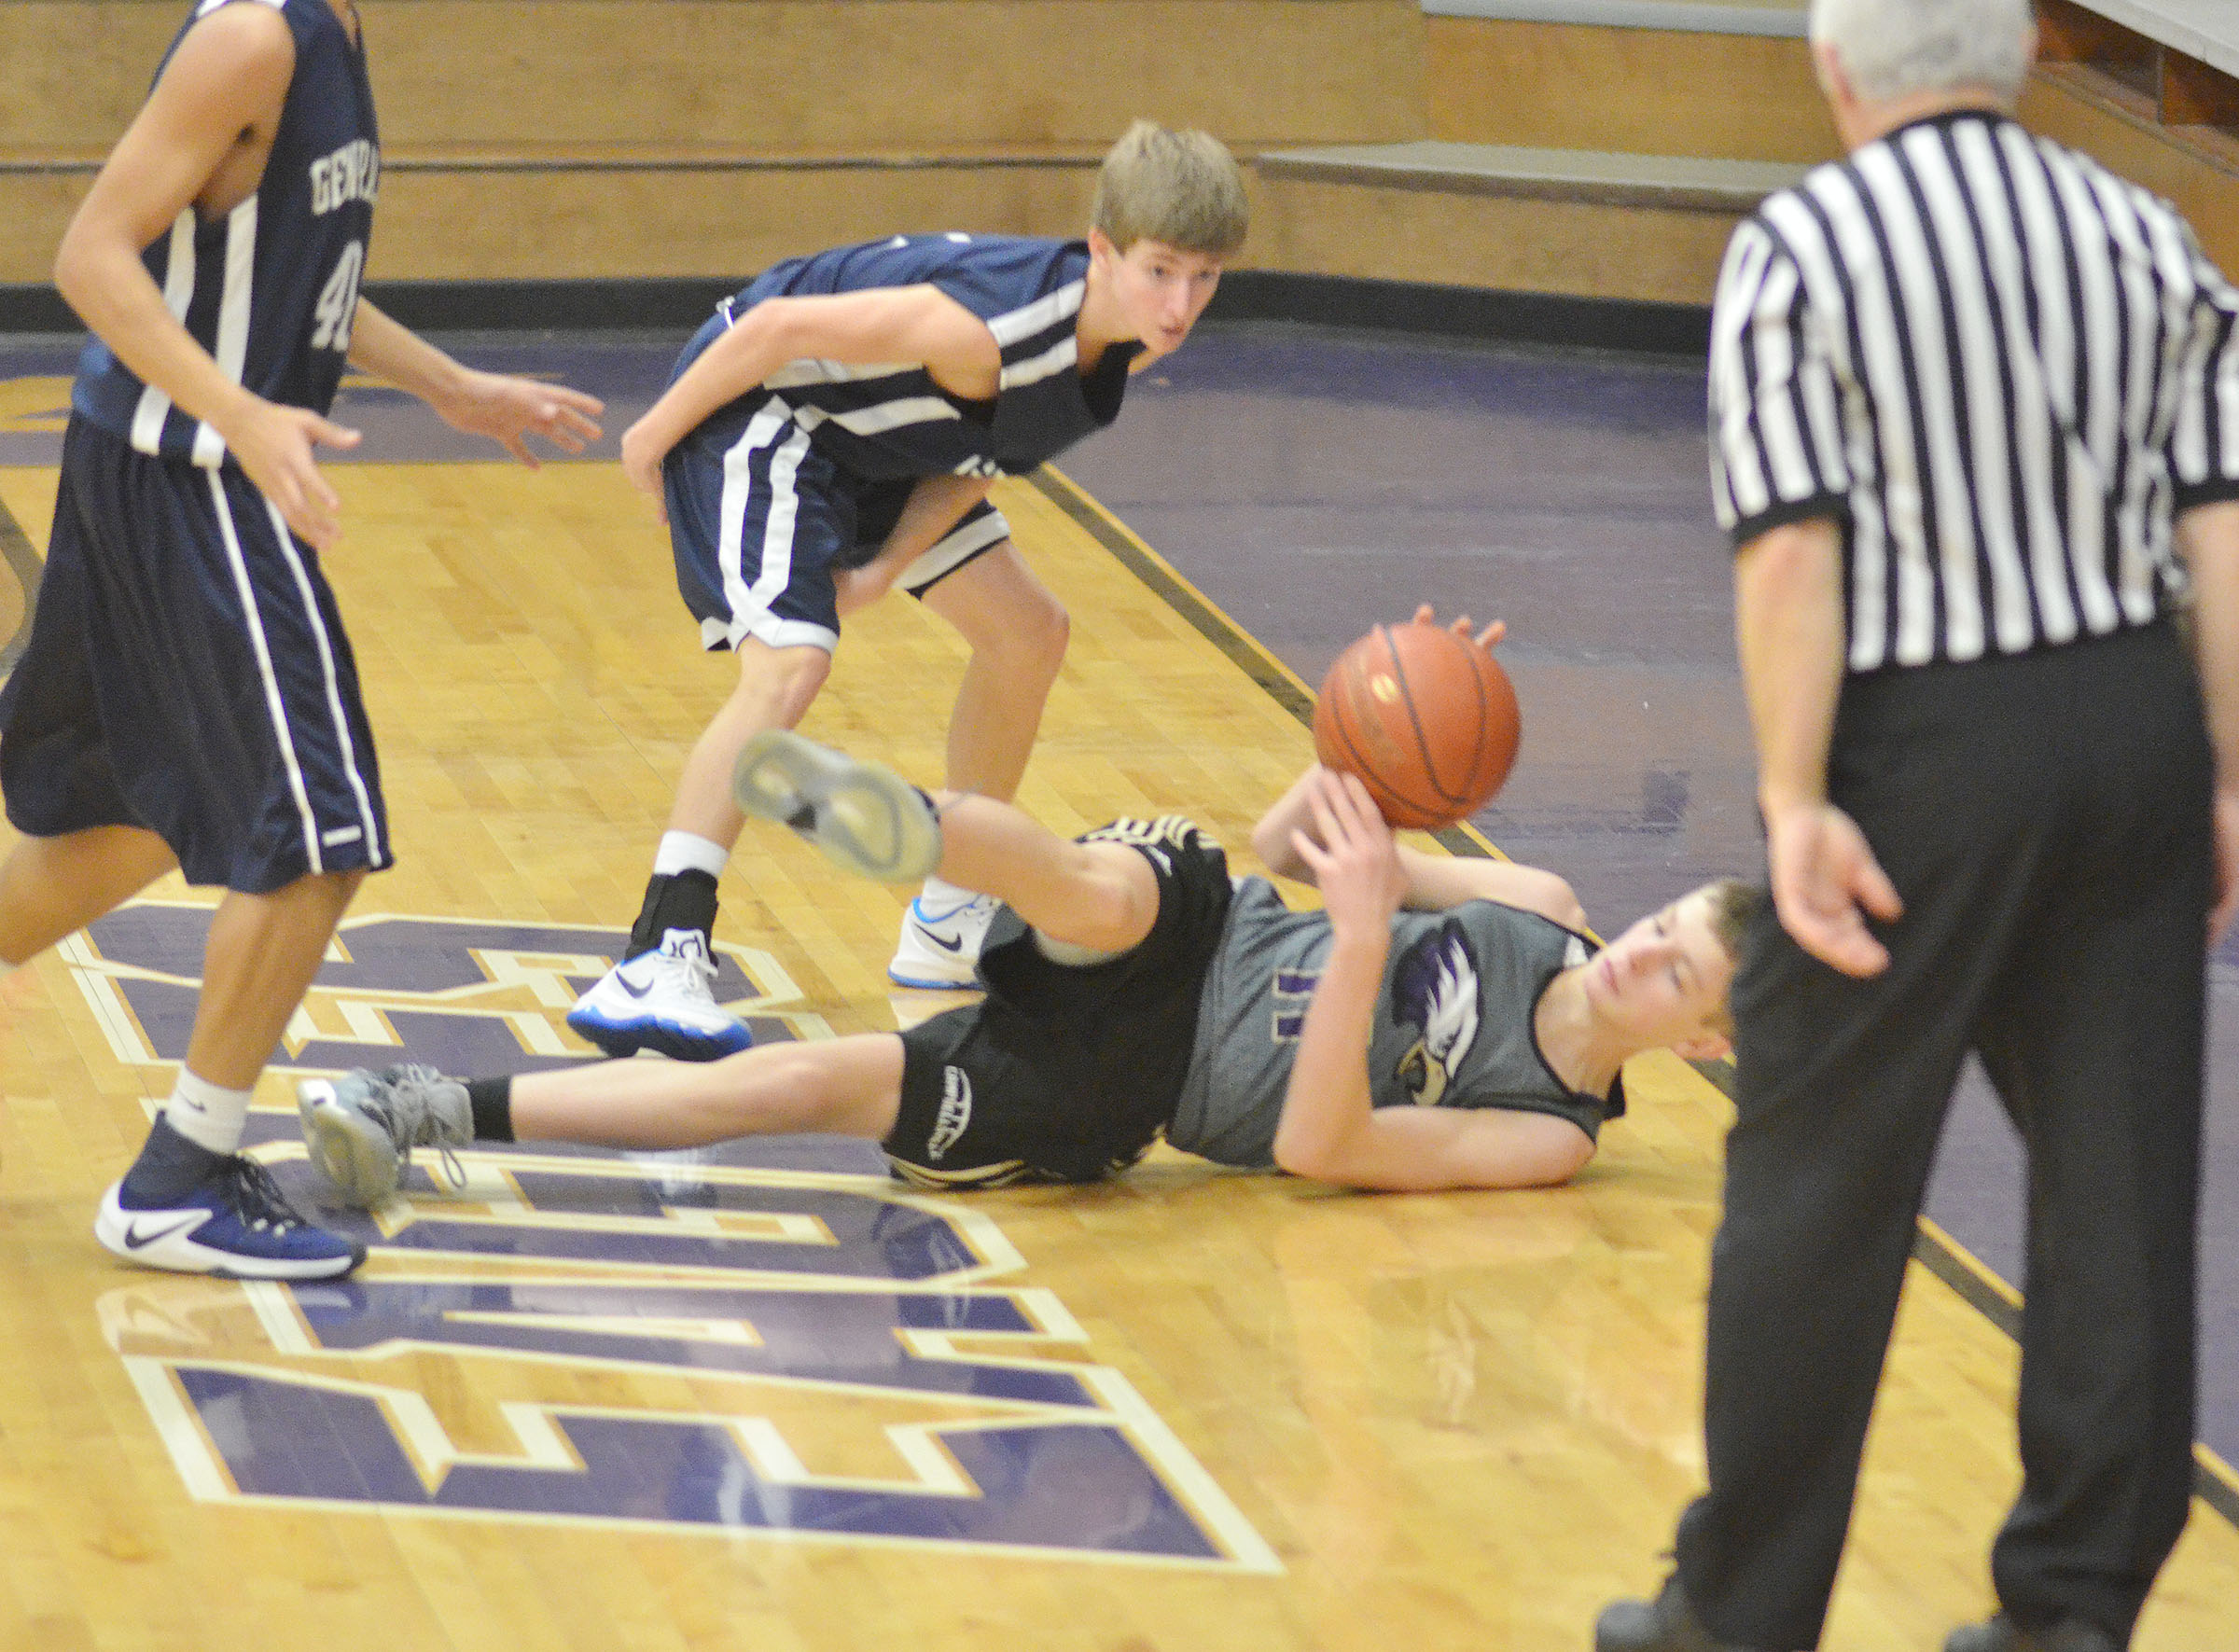 CHS freshman Noah Hughes battles for the ball.